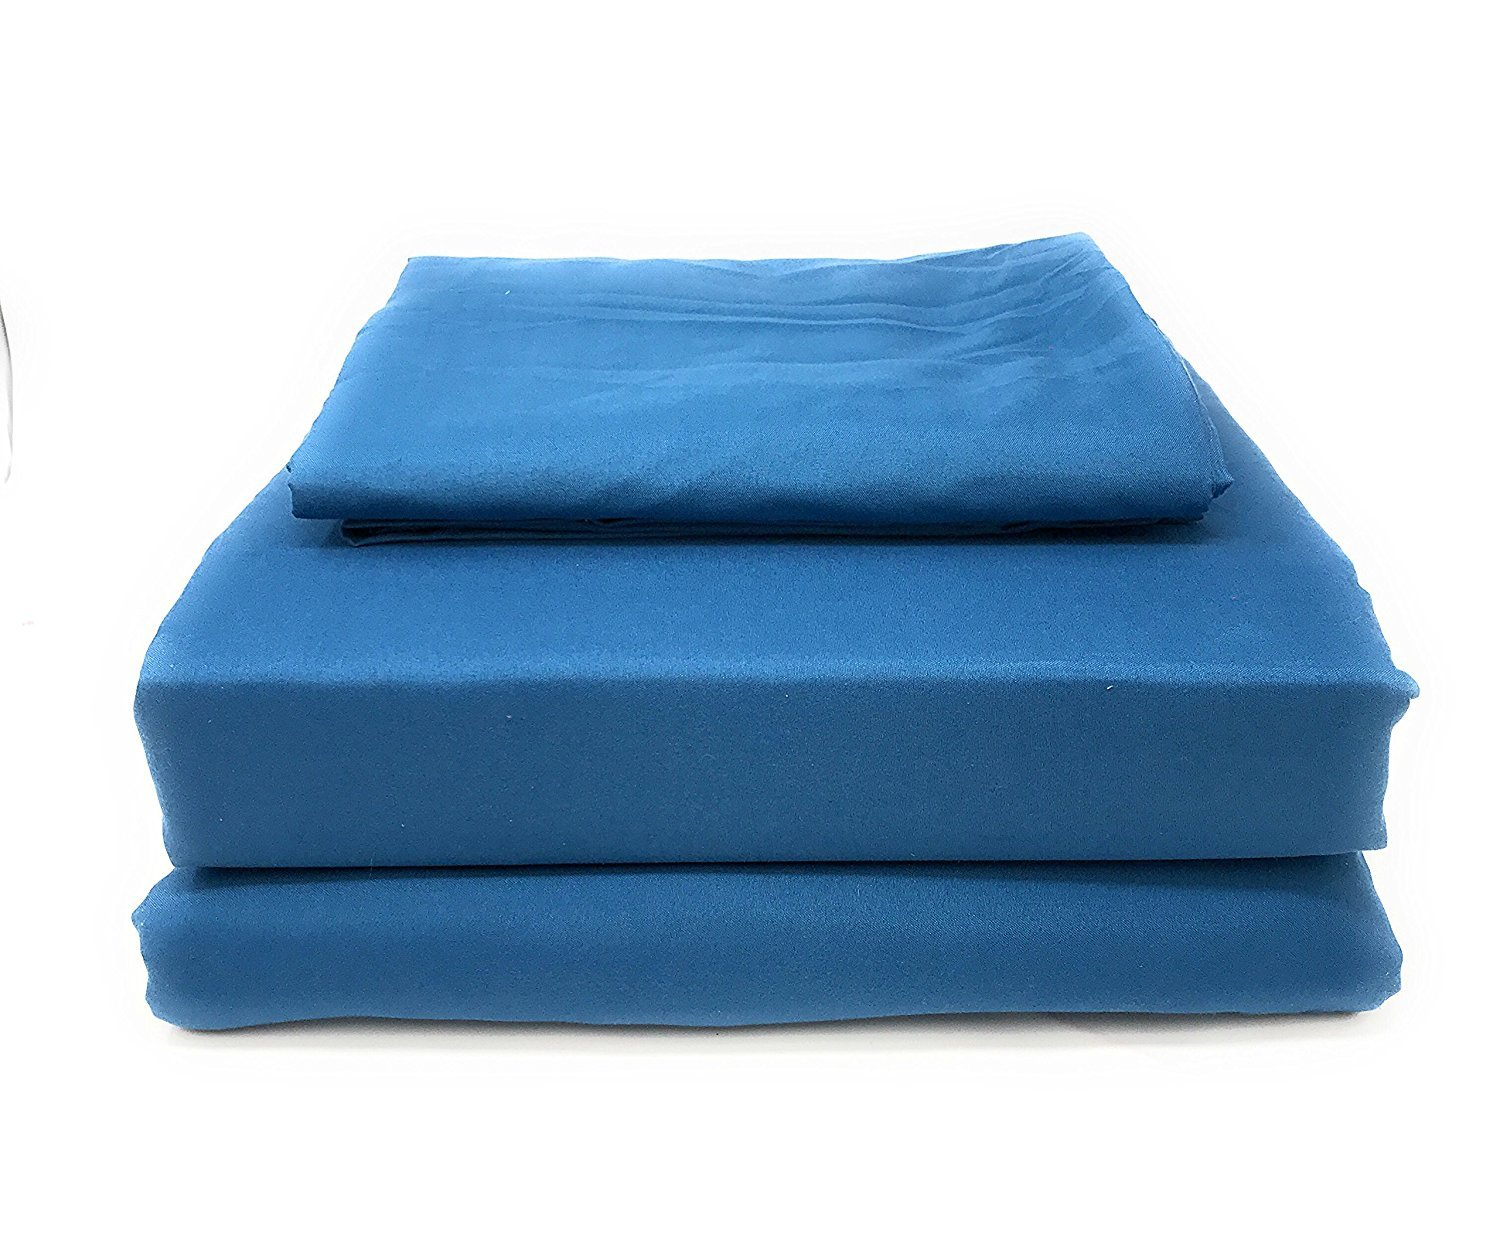 Tache Soft Microfiber Deep Pocket - Solid Ocean Blue Luxury Fitted and Flat 3 Piece Sheet Set, Twin